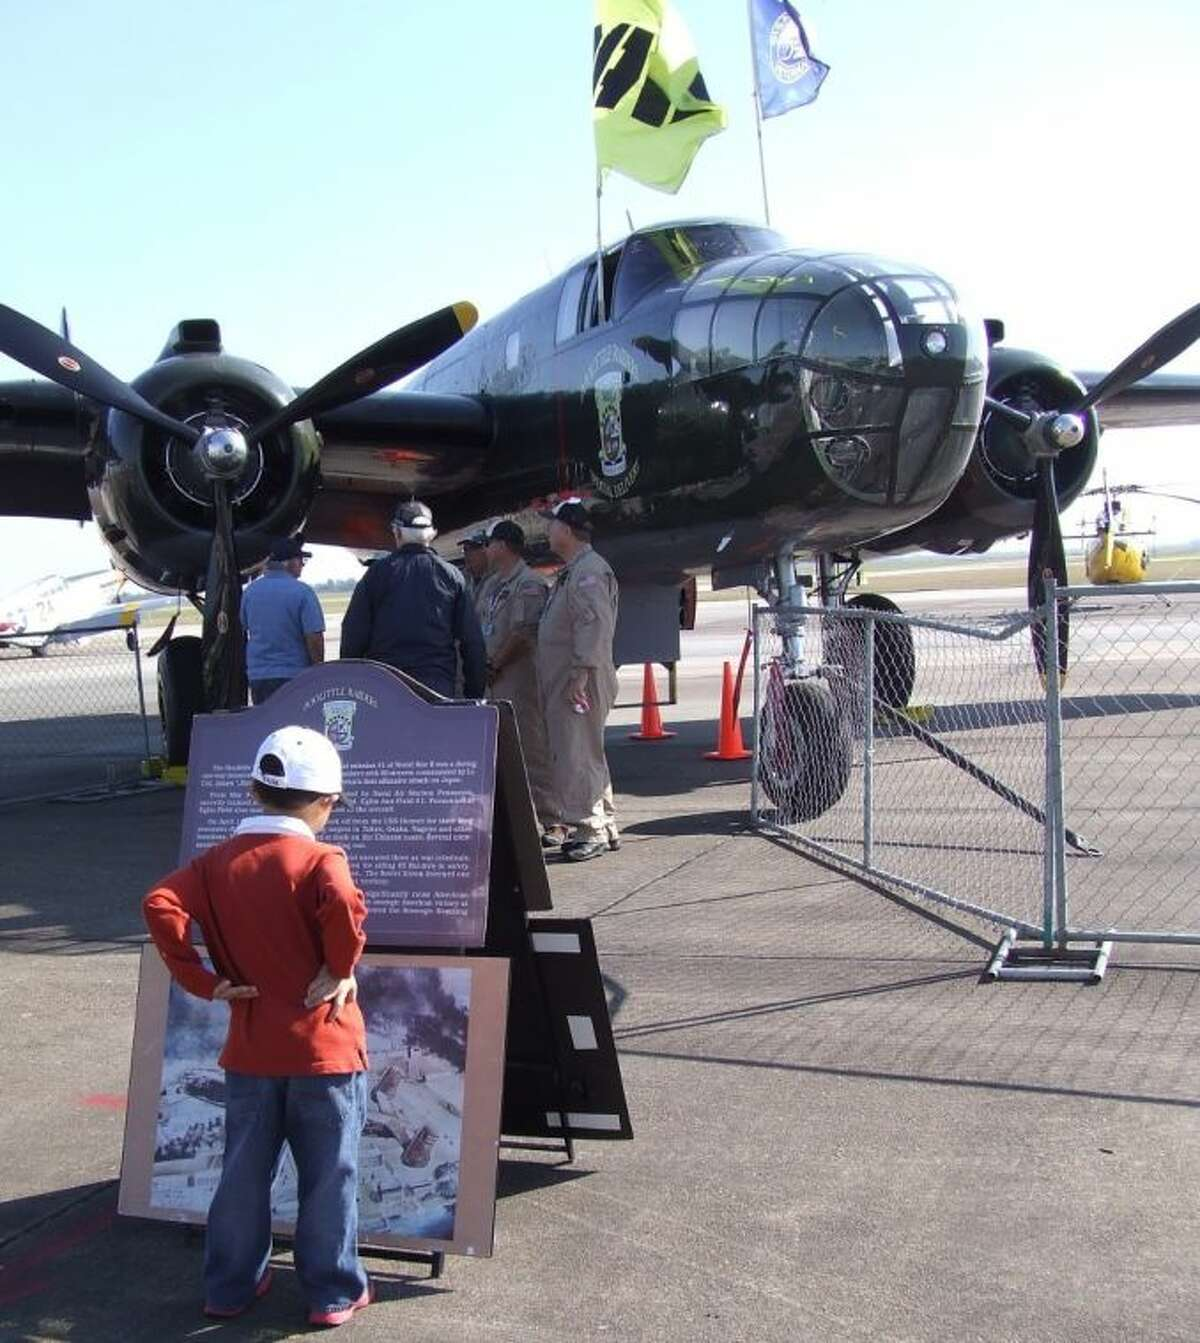 The Disabled American Veterans Aviation Outreach Program at Wings Over Houston, featuring the Lone Star Flight Museum's B-25 (official B-25 of the Doolittle Raider Association) drew interest from people of all ages.